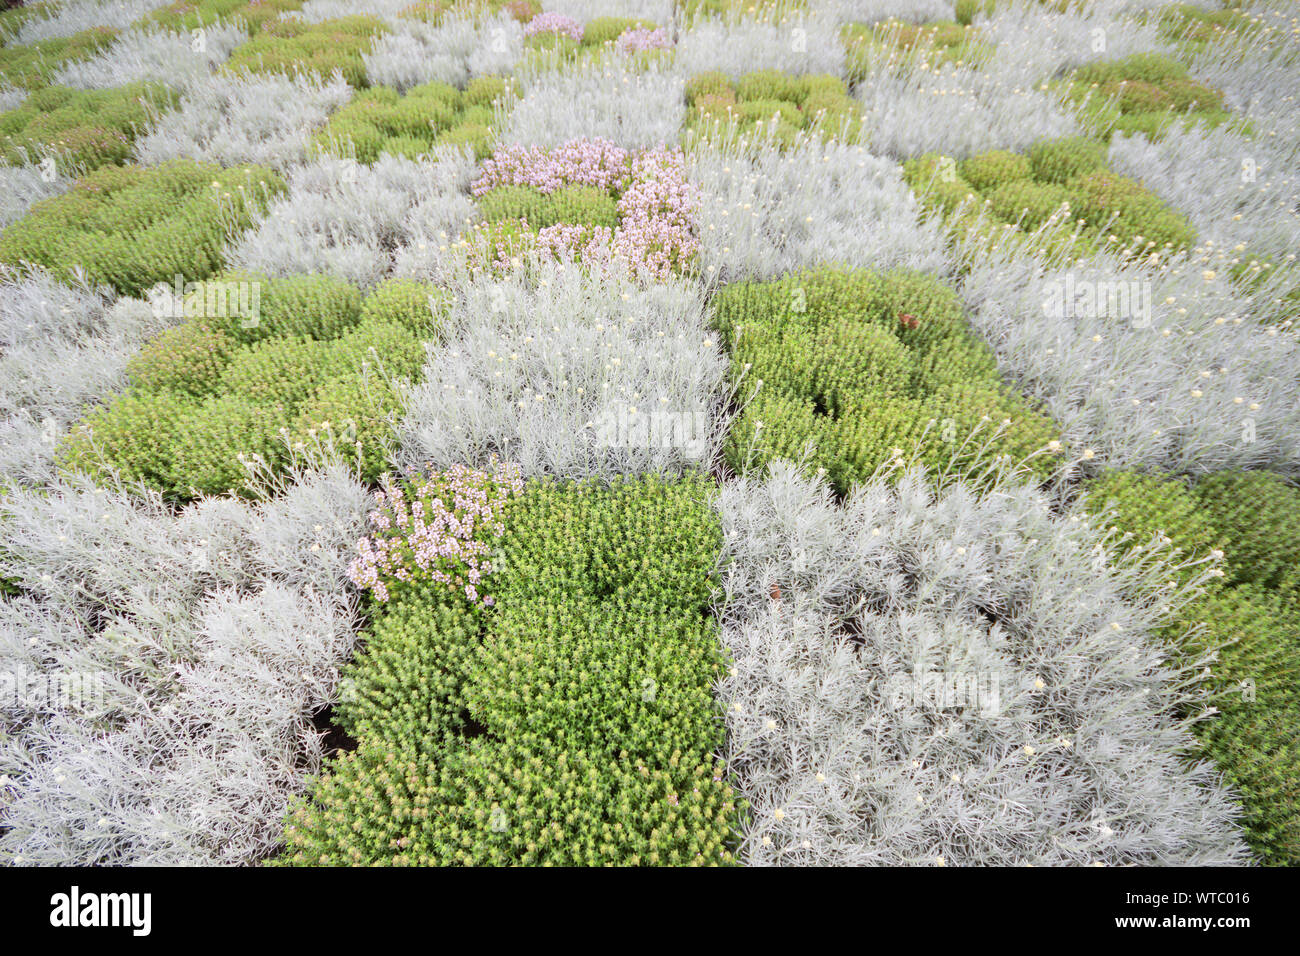 Garden decoration with grass planting, green grass or green plant field in garden in spring or summer nature background. Stock Photo